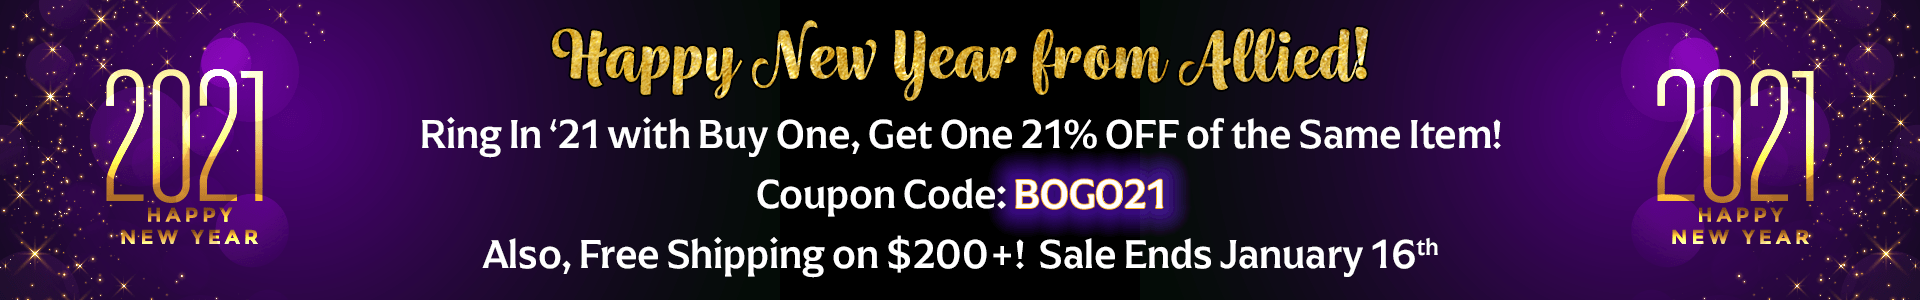 Happy New Year! Save Big During Our BOGO 21% off Sale!